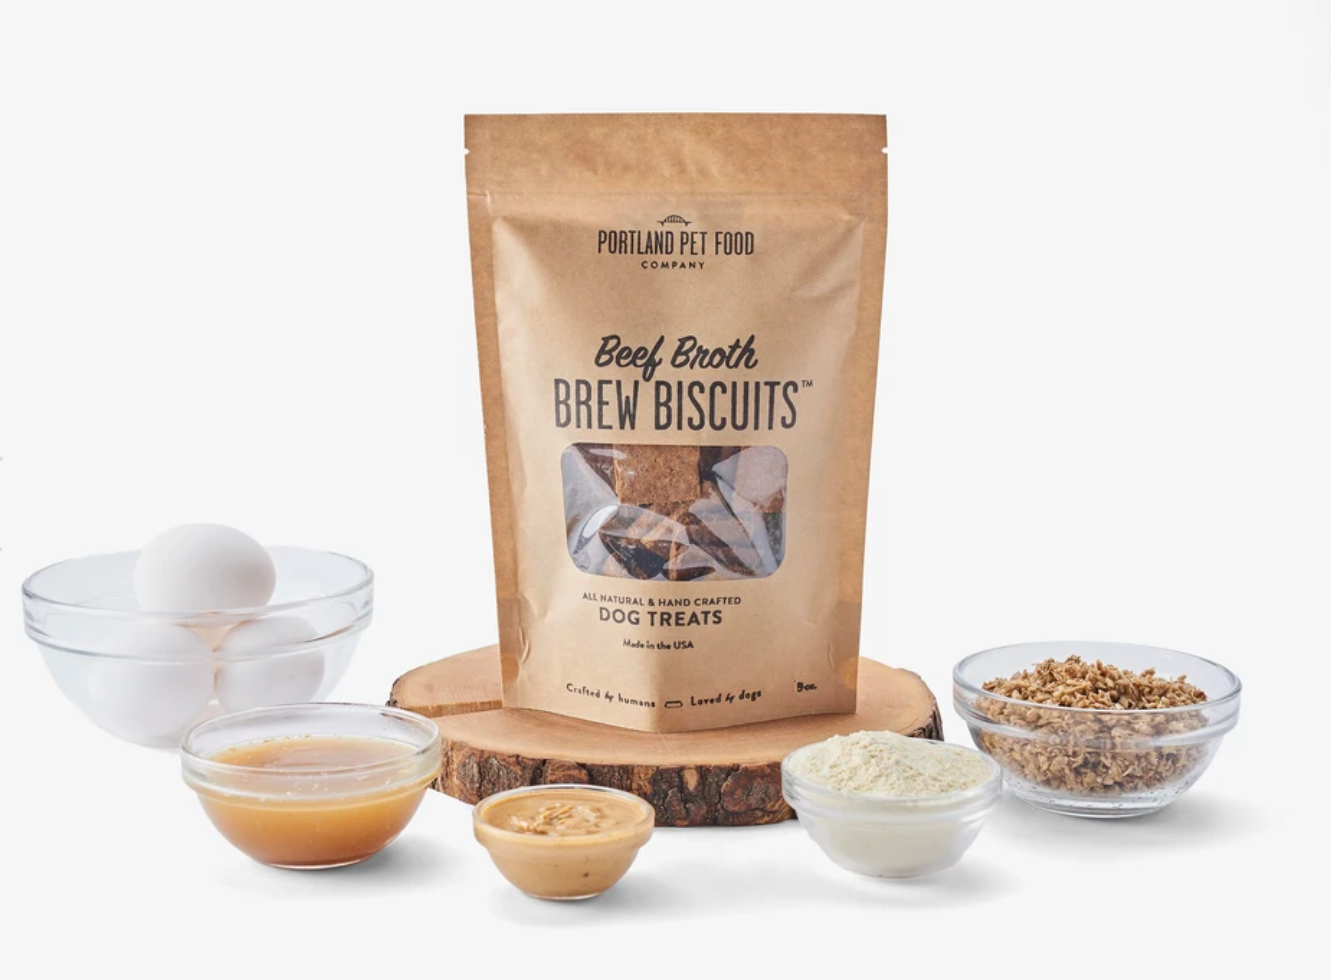 Biscuits: Brew Biscuits With Beef Broth